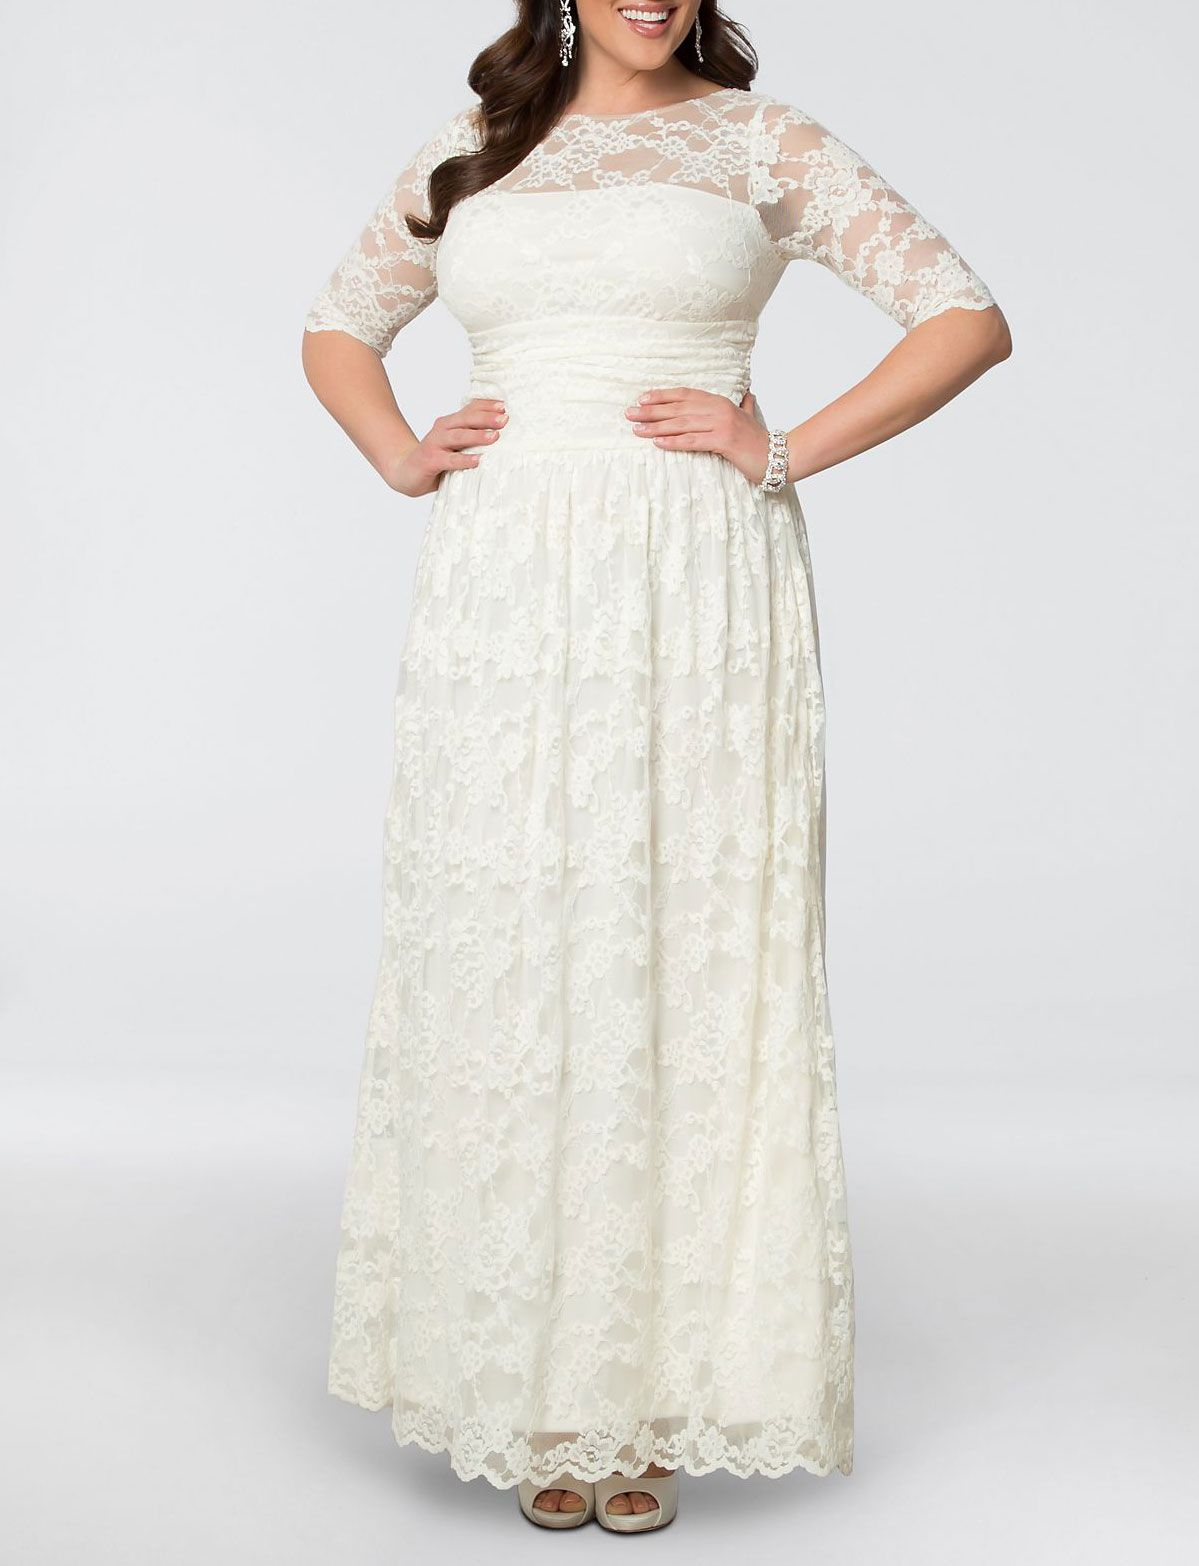 e35f19e8ac3 Kiyonna Lace Illusion Plus Size Wedding Gown